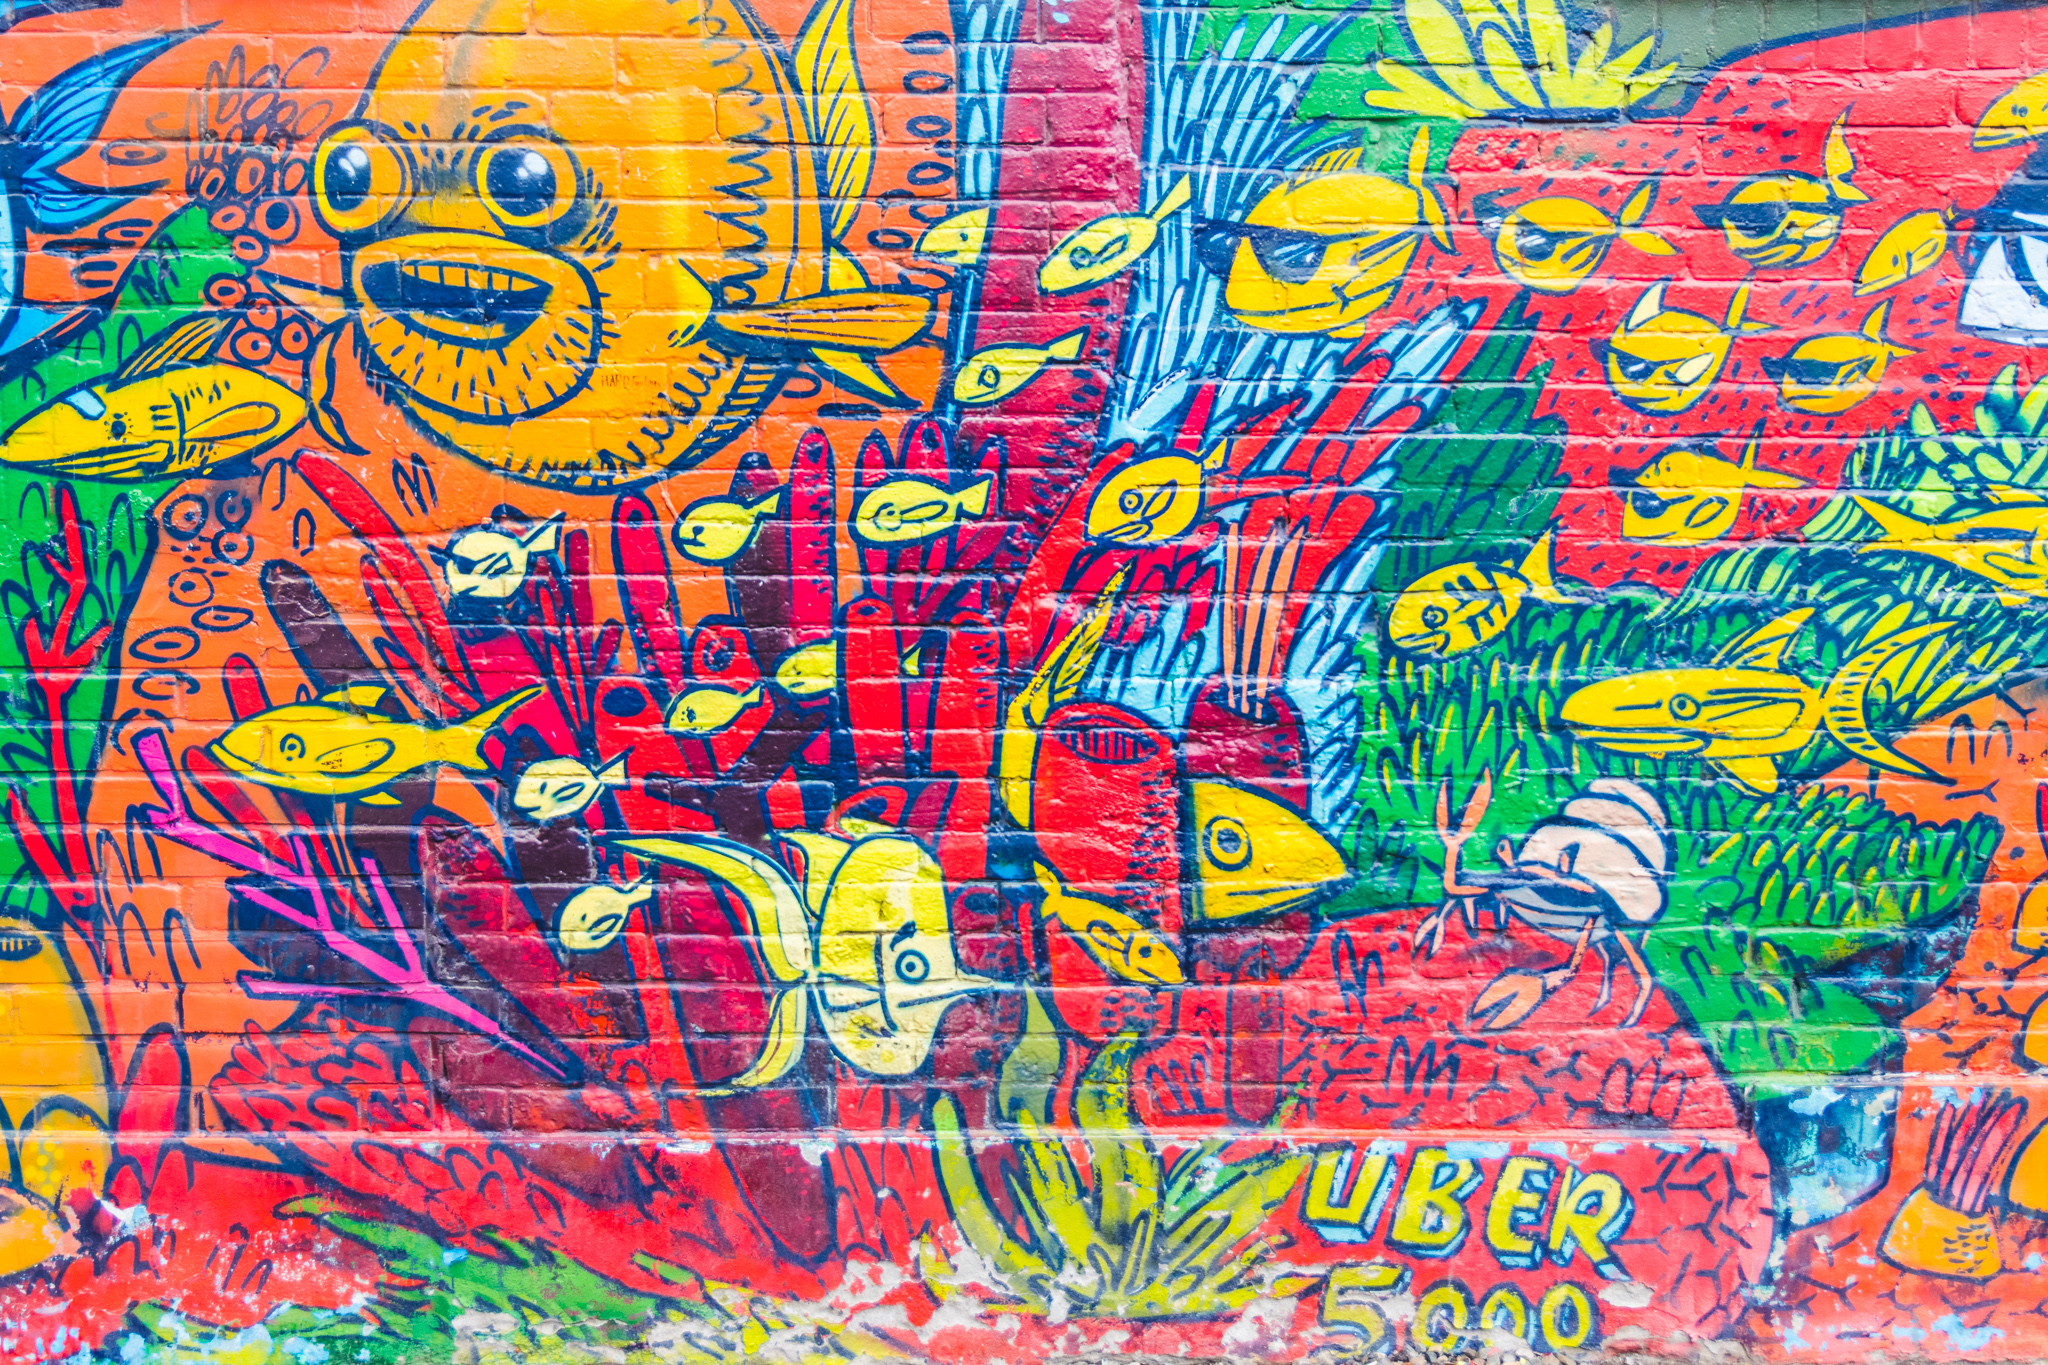 Most of the larger murals were done by an artist known as Uber 5000. You can usually see his name writer somewhere within his work.